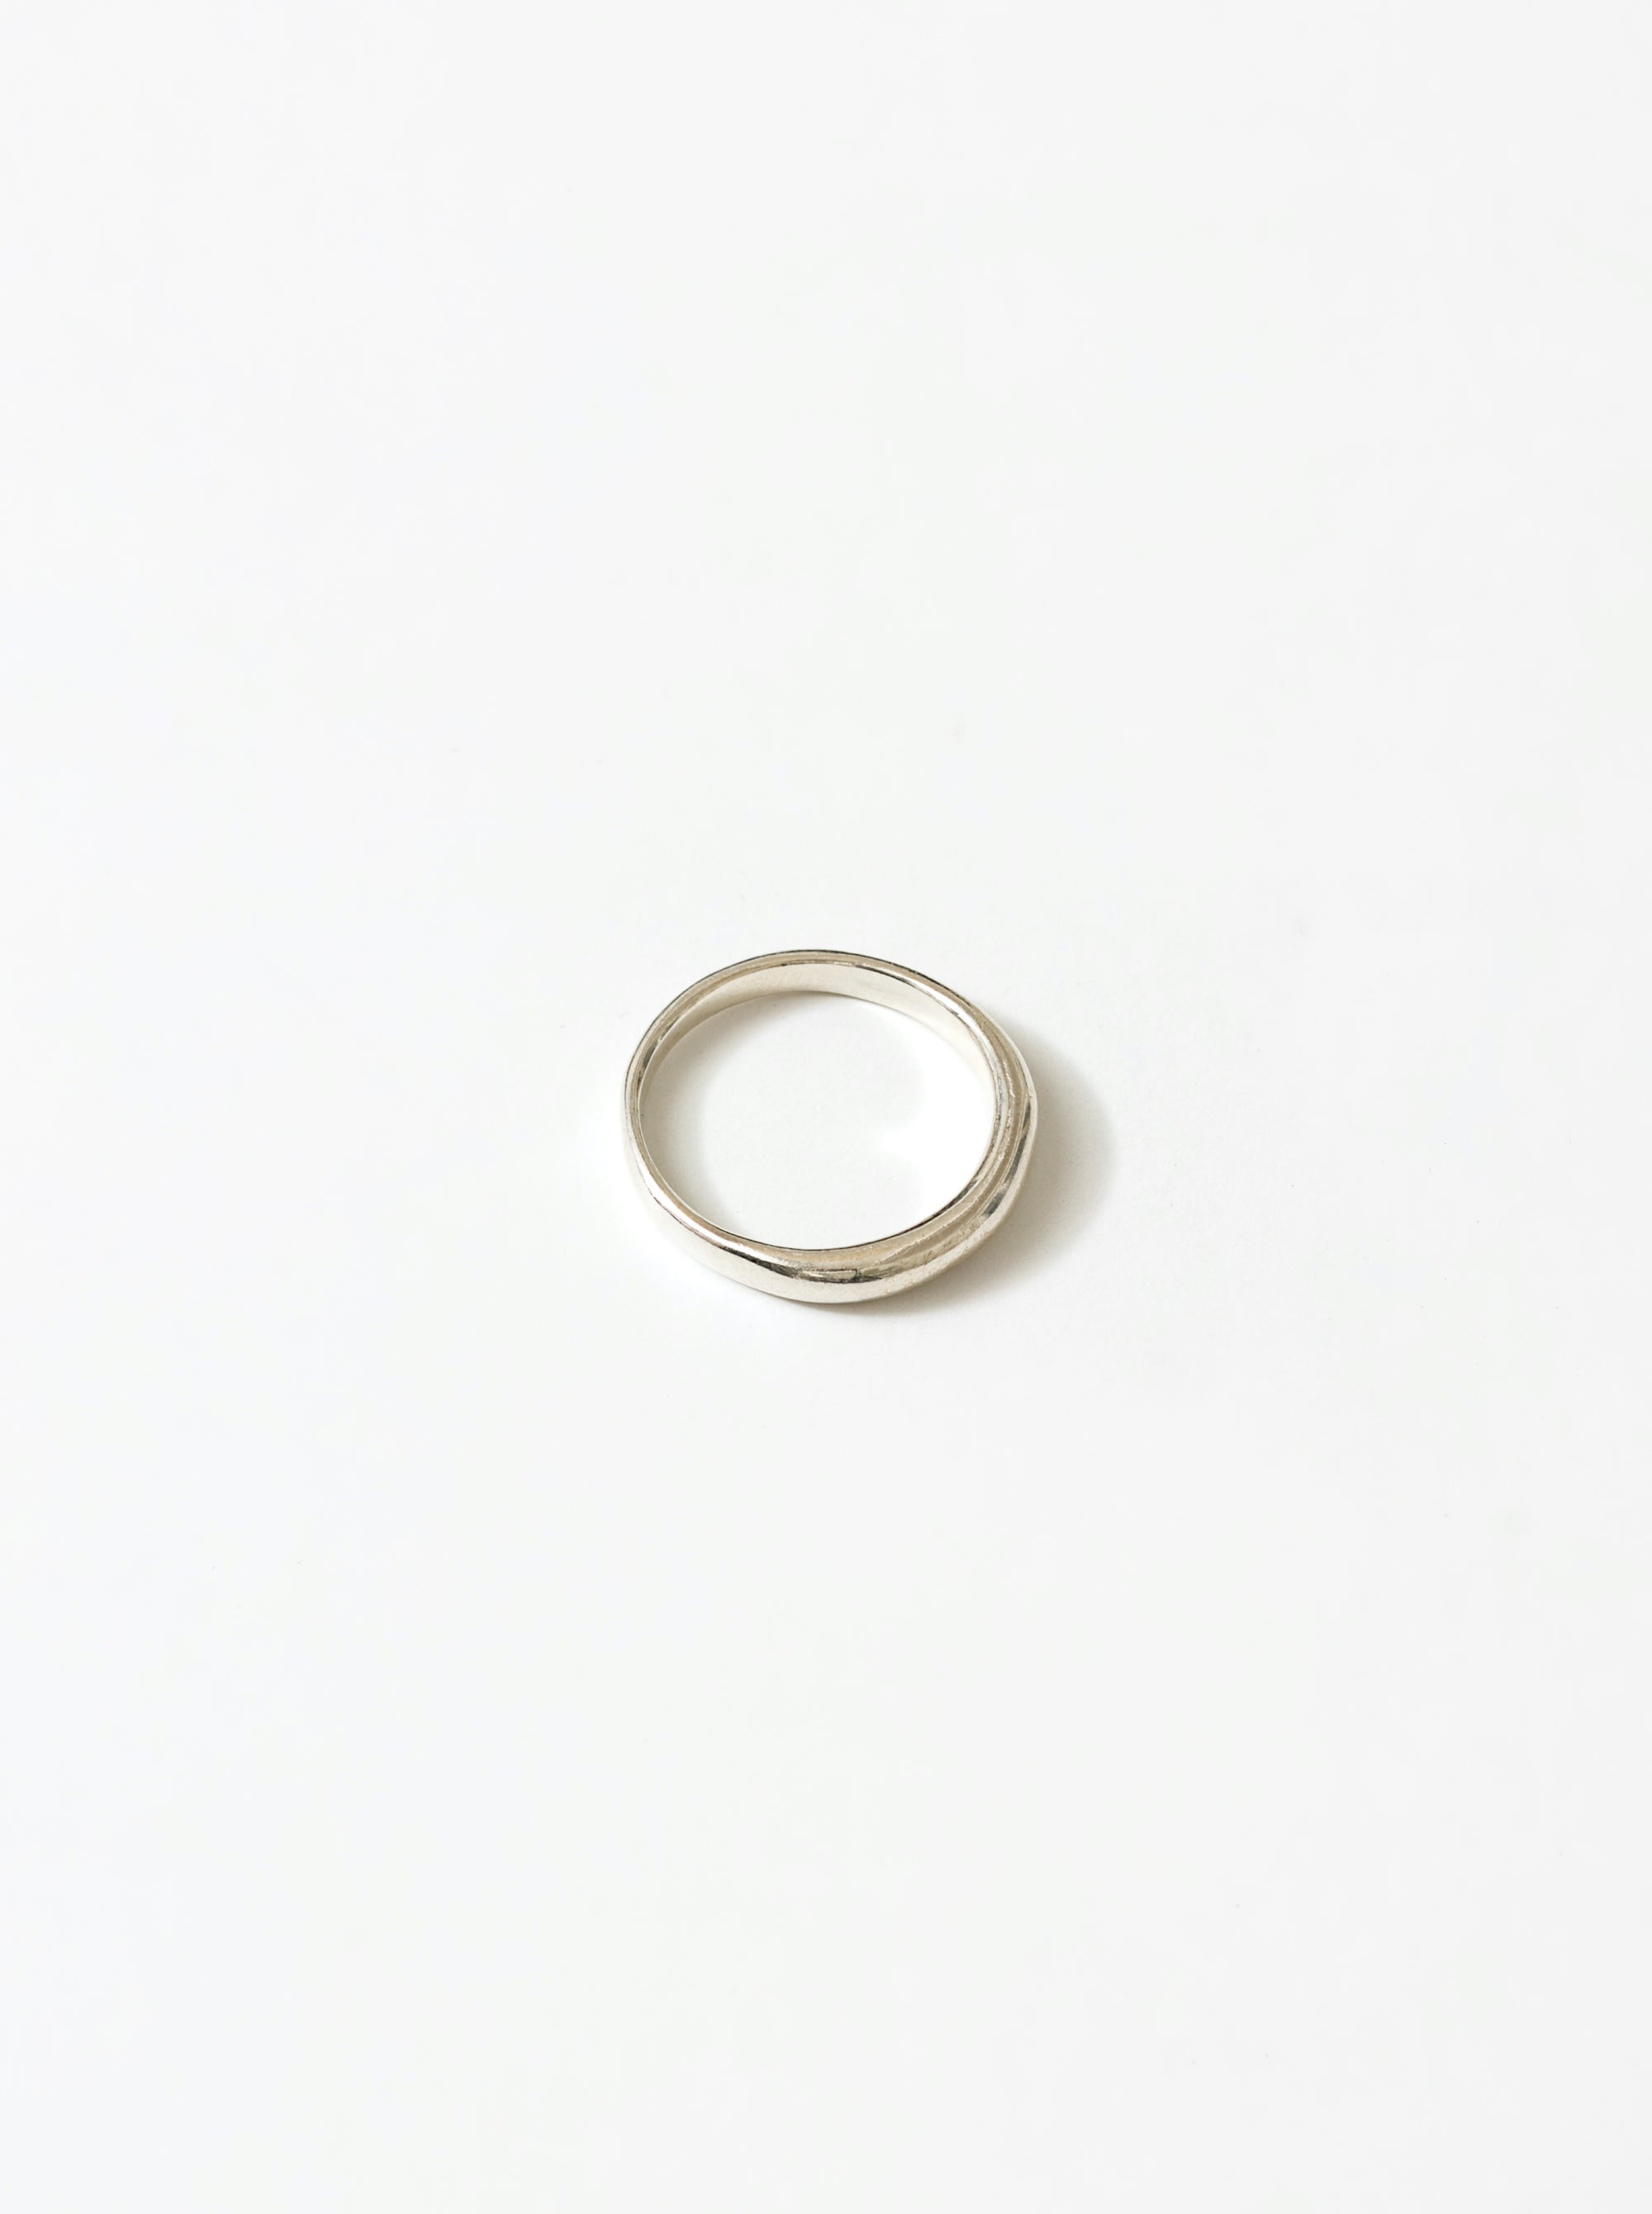 Emeile Ring in Sterling Silver